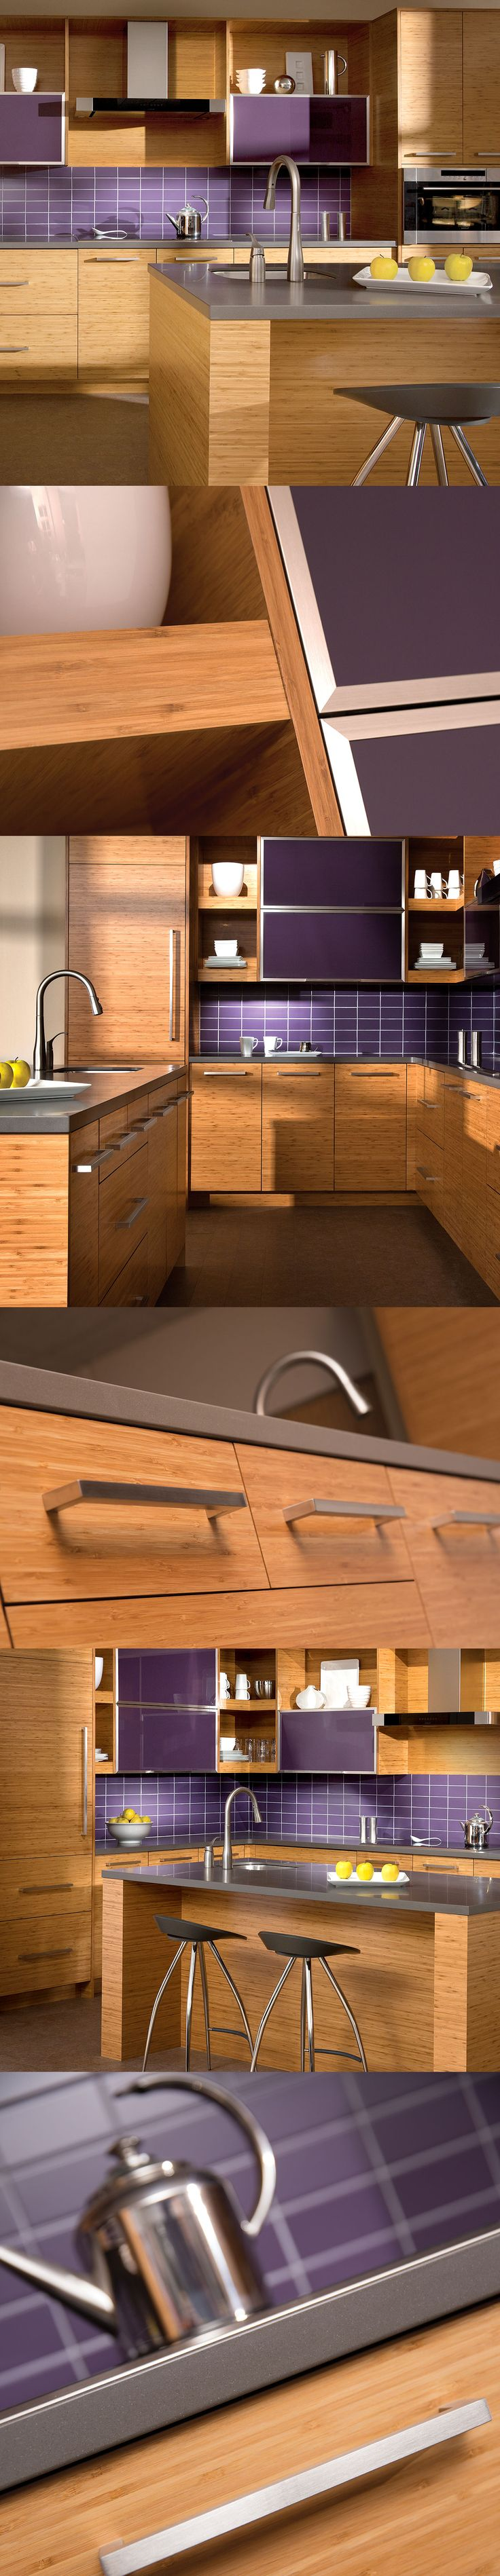 Bamboo Cabinets Kitchen 17 Best Ideas About Bamboo Cabinets On Pinterest Cabinet